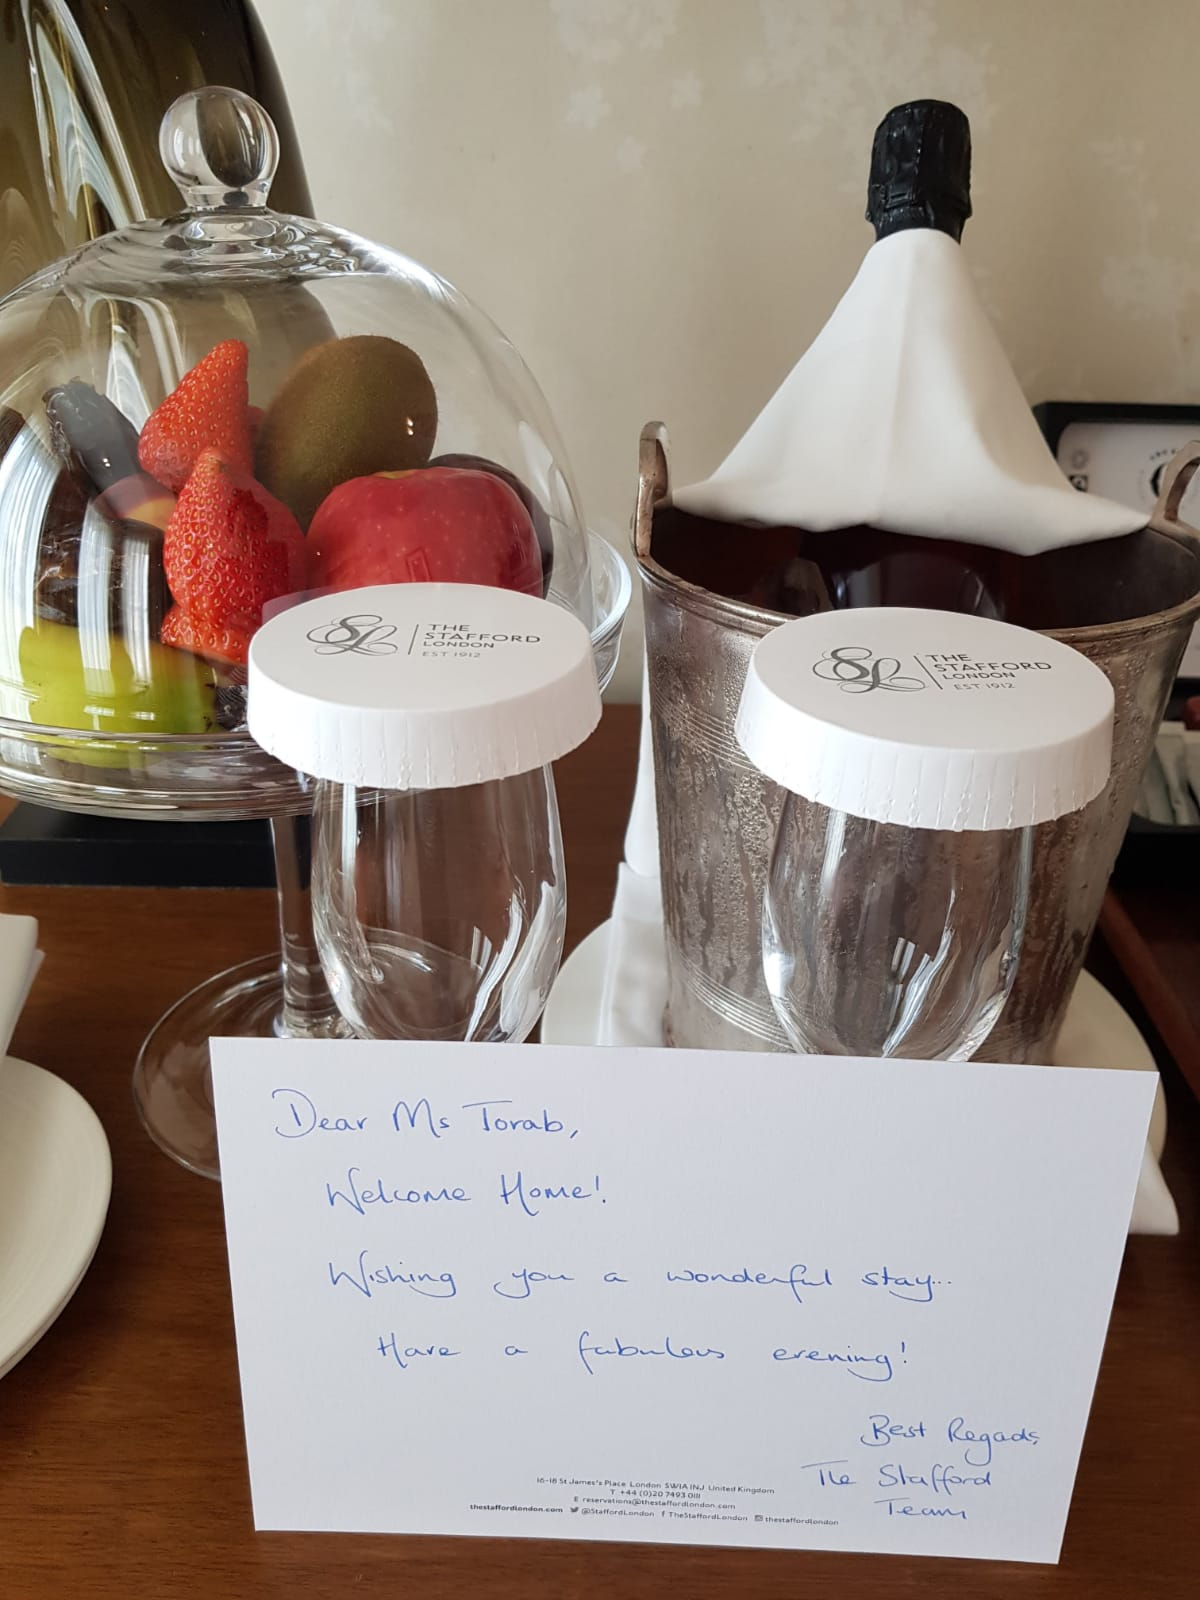 Review: The Stafford Hotel